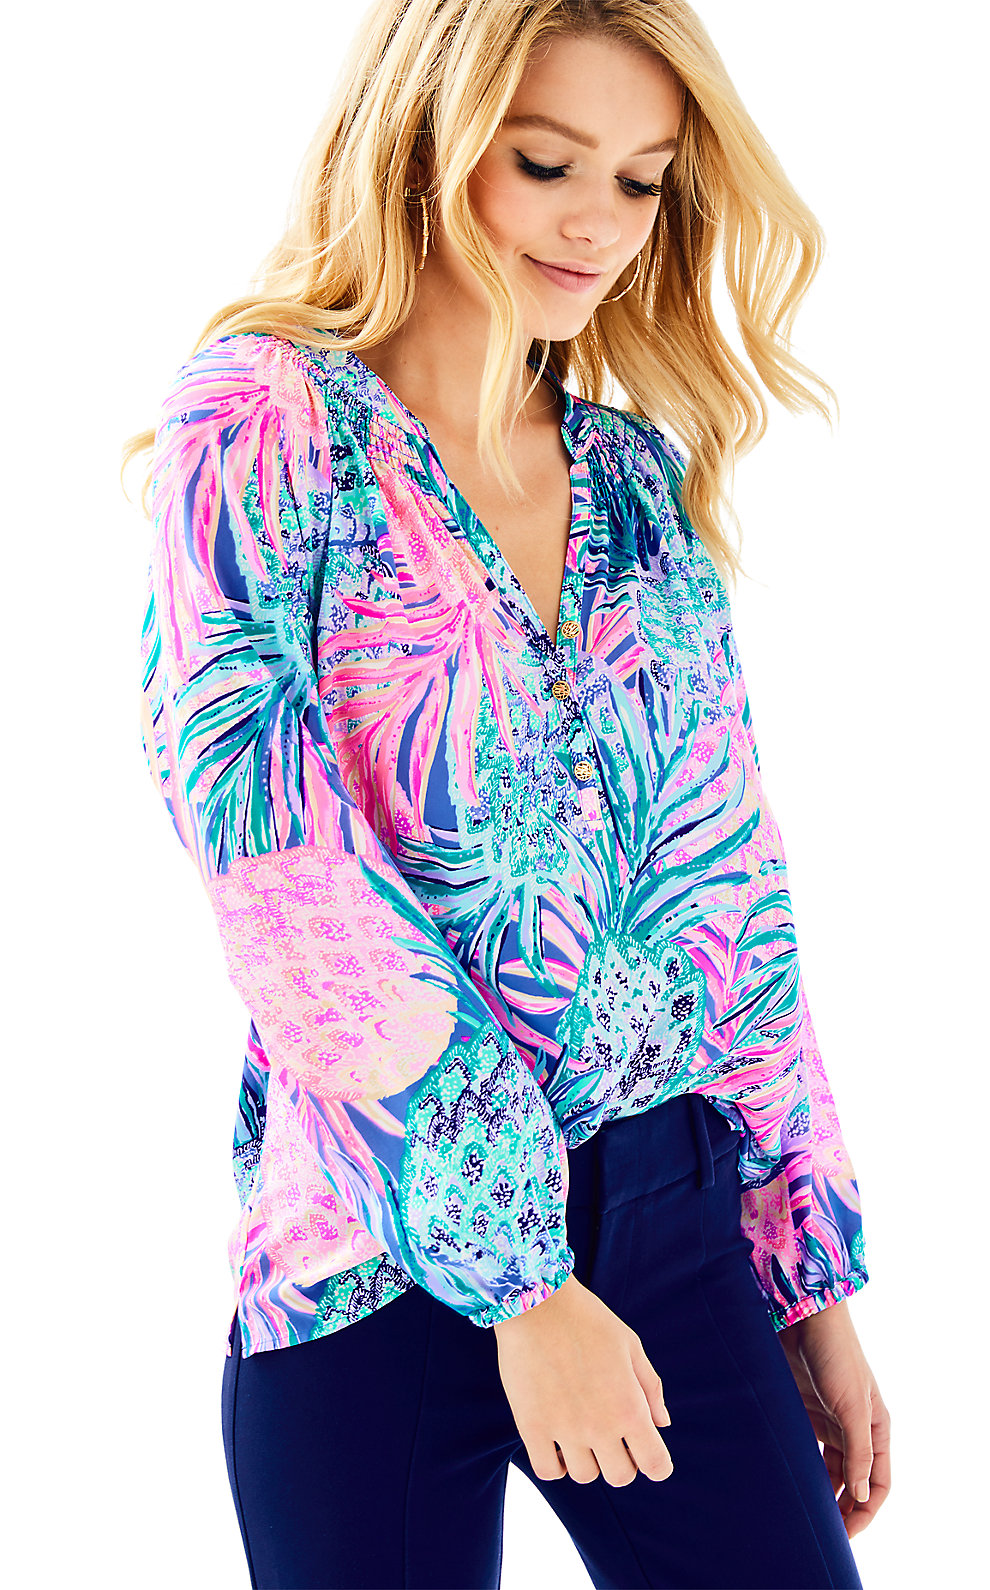 Lilly Pulitzer Elsa Silk Top - Gypset Paradise